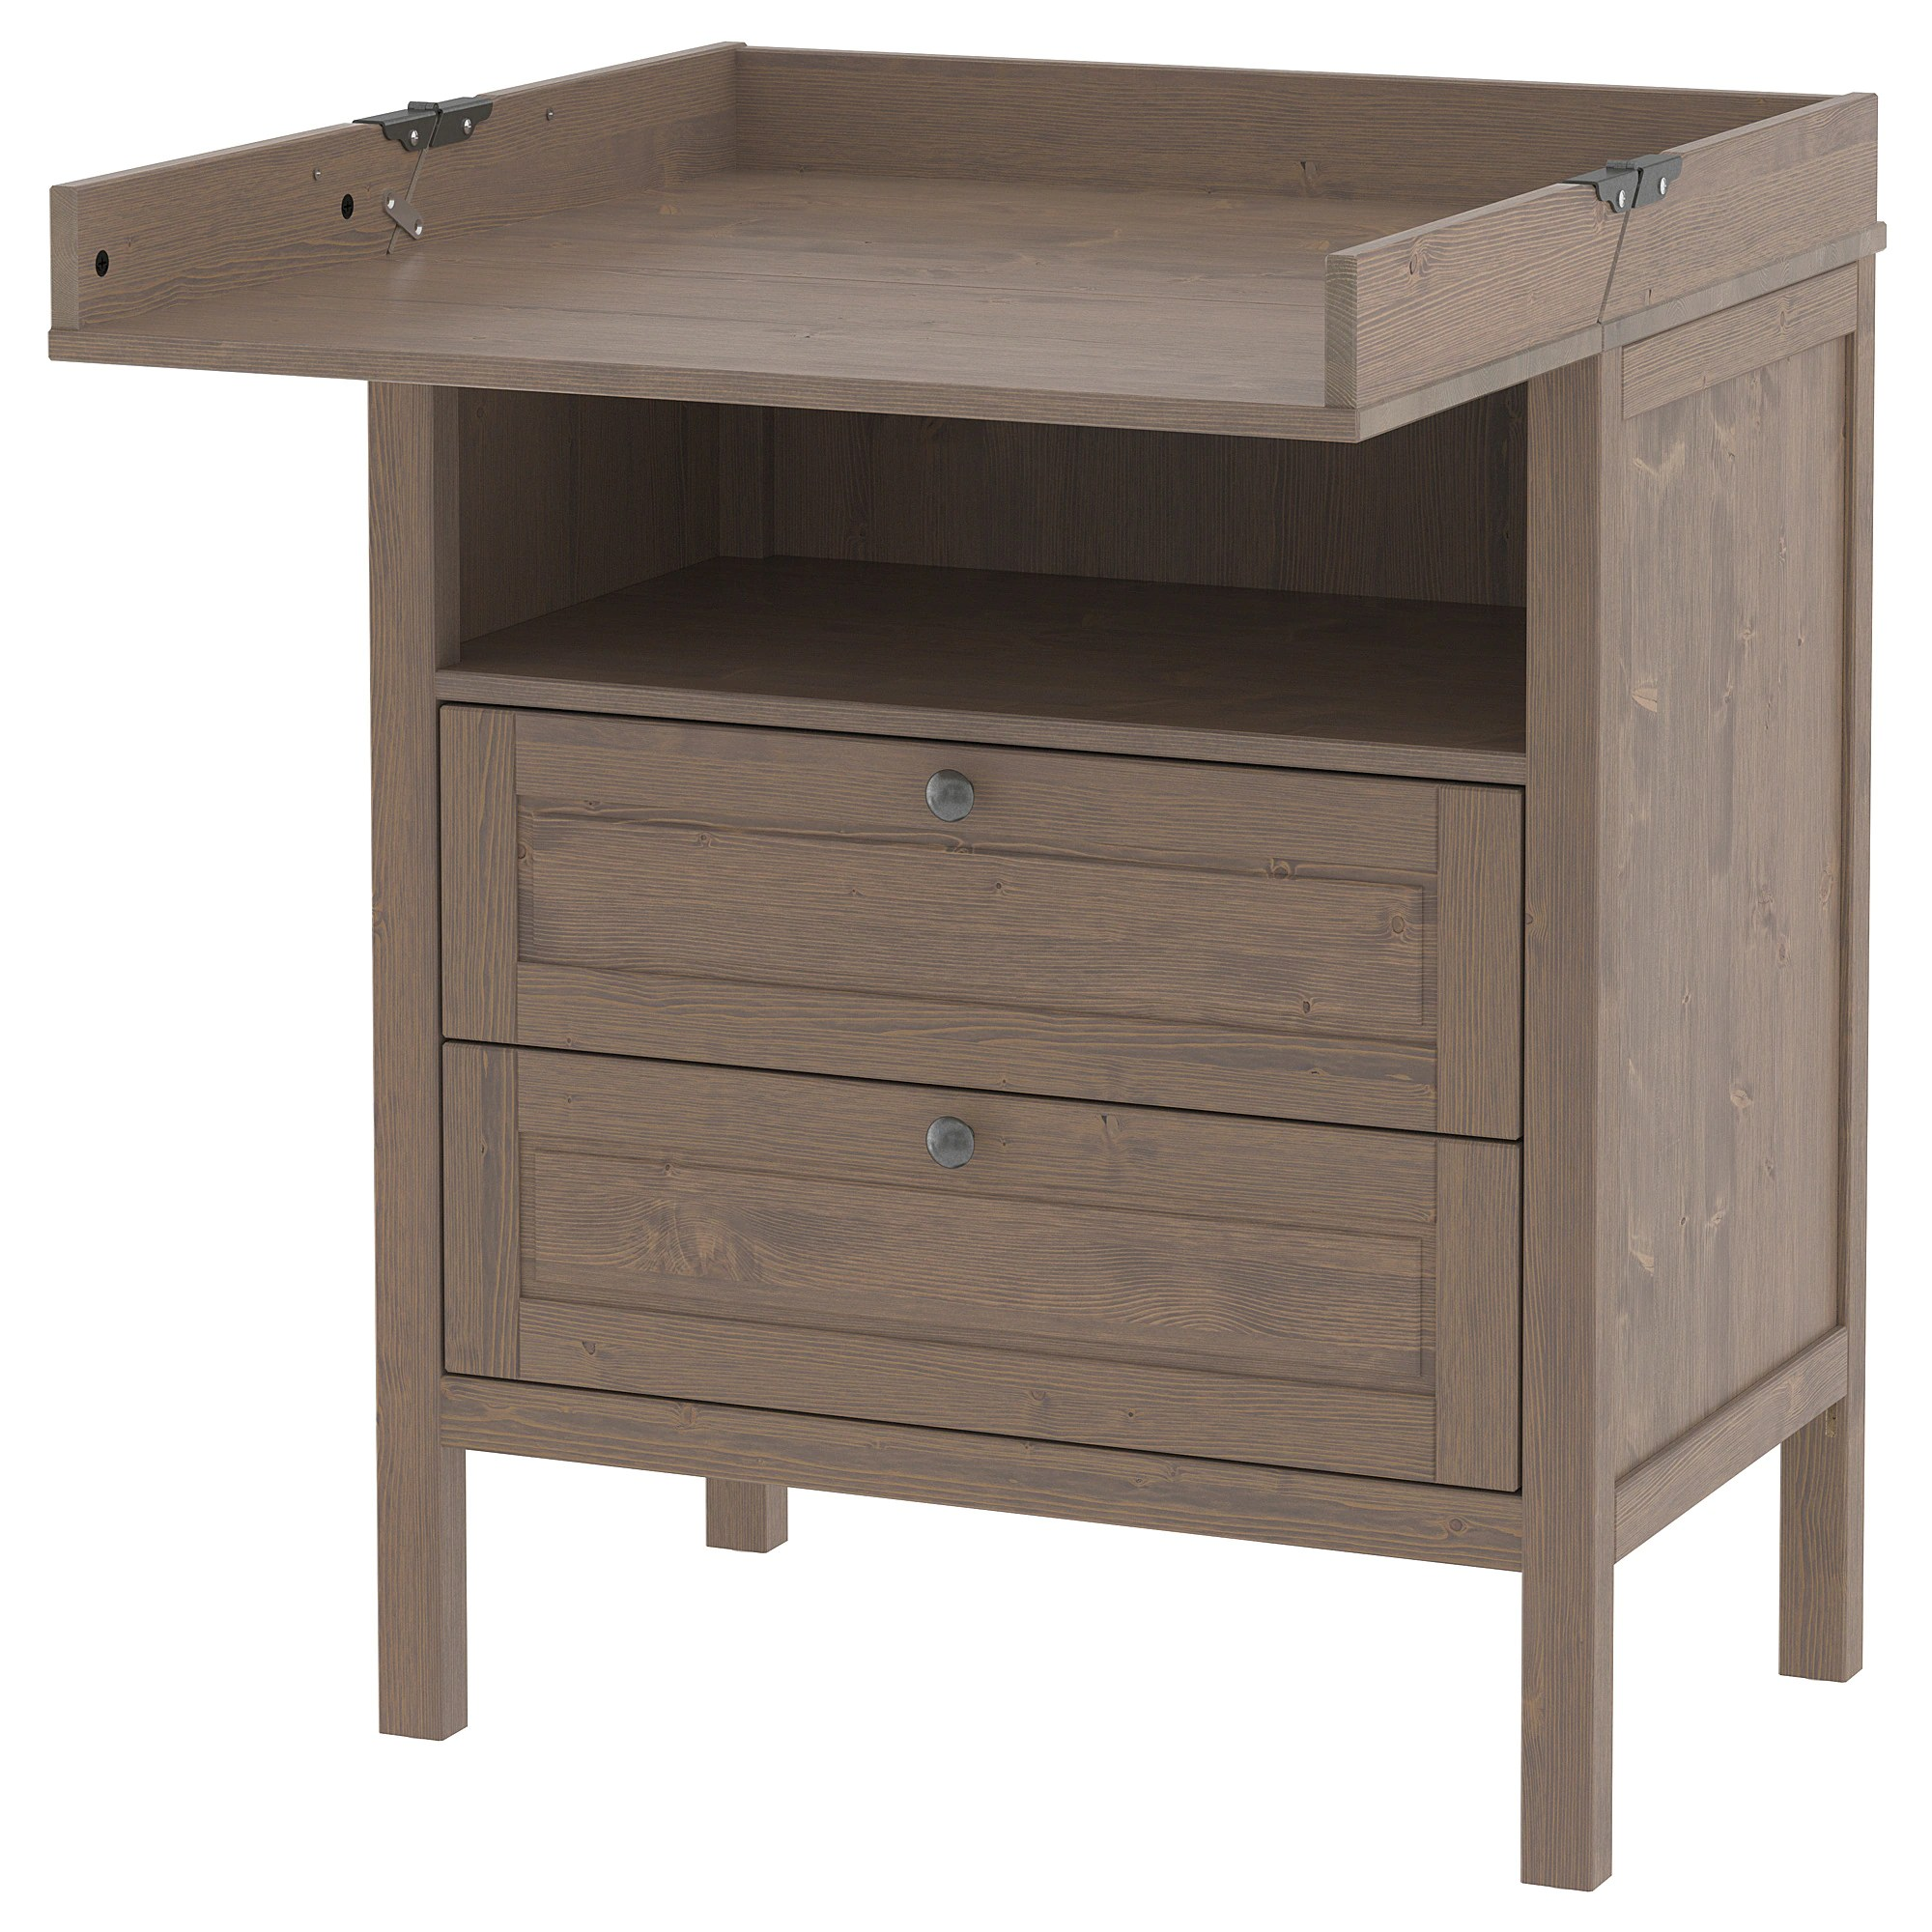 Changing Table Chest Of Drawers Sundvik Changing Table Chest Of Drawers Grey Brown